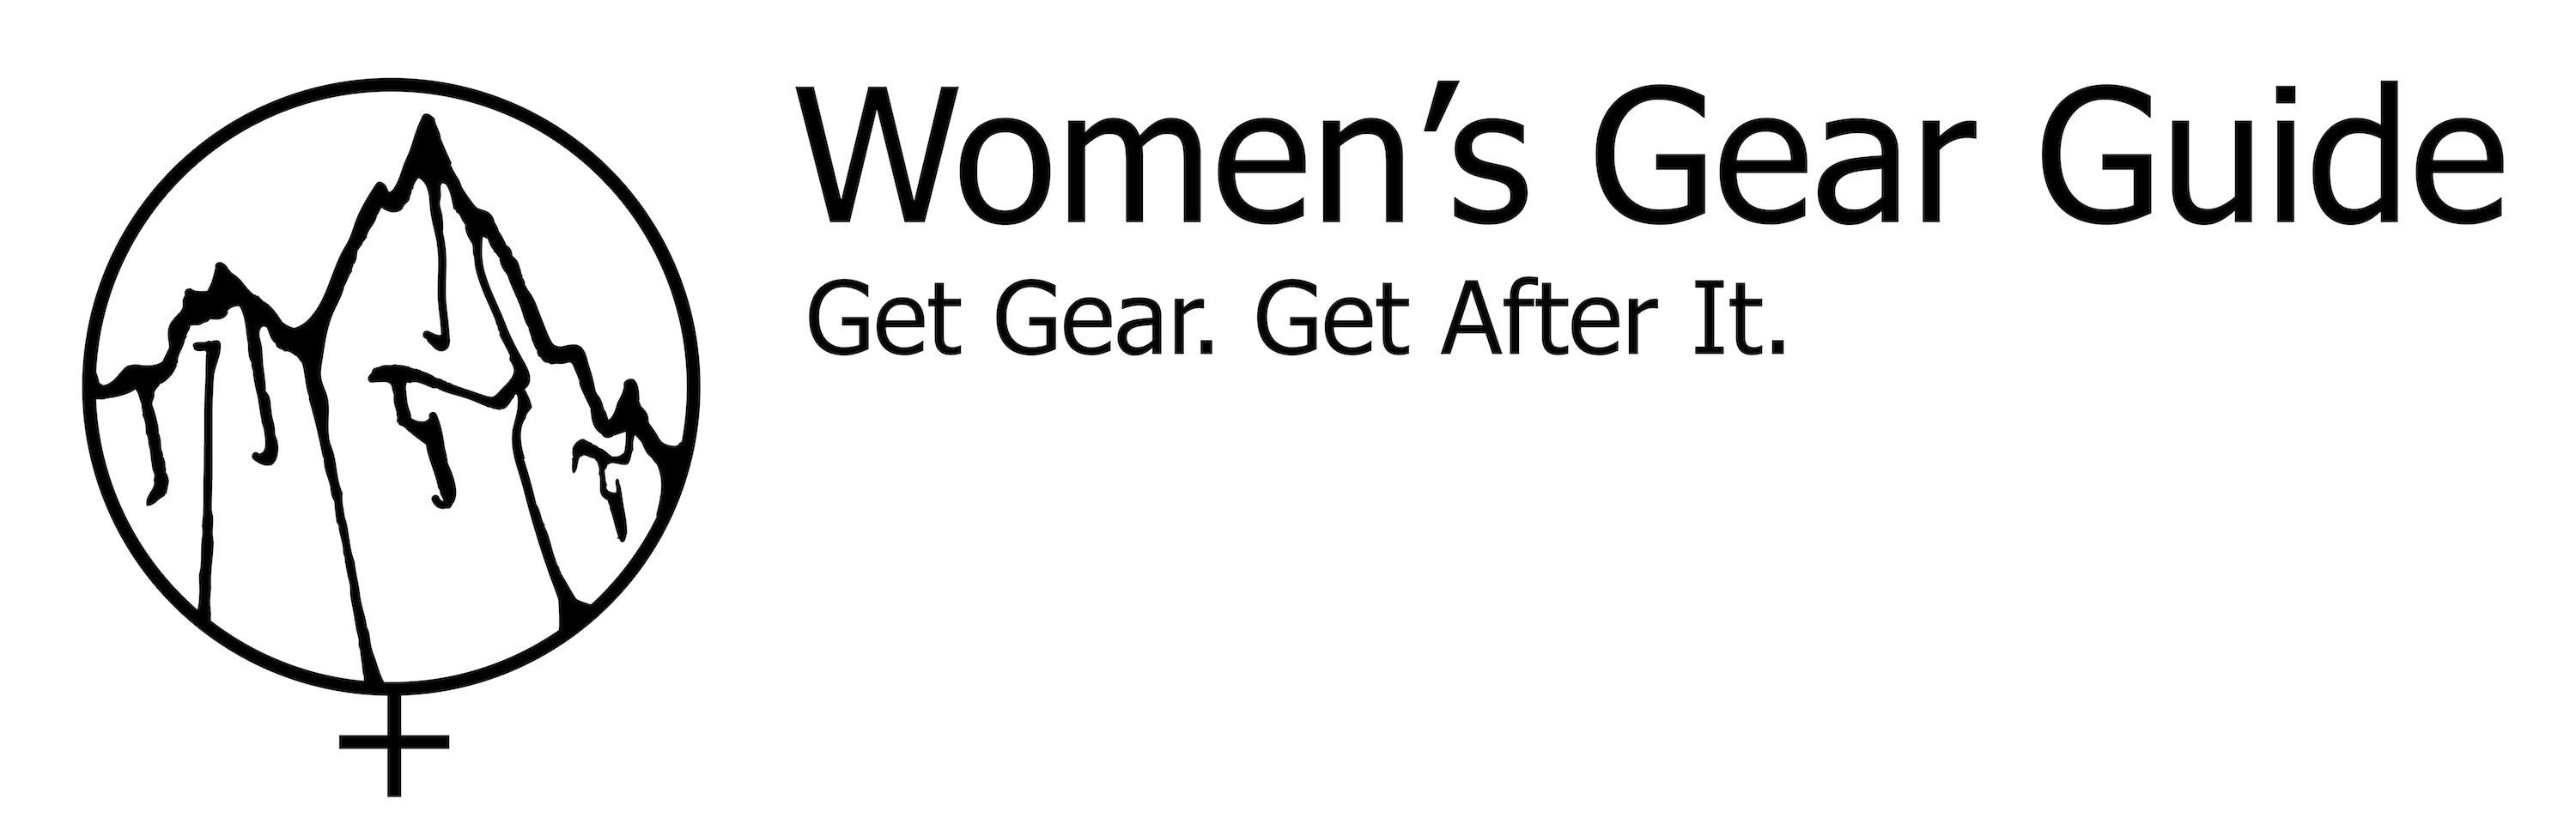 Women's Gear Guide